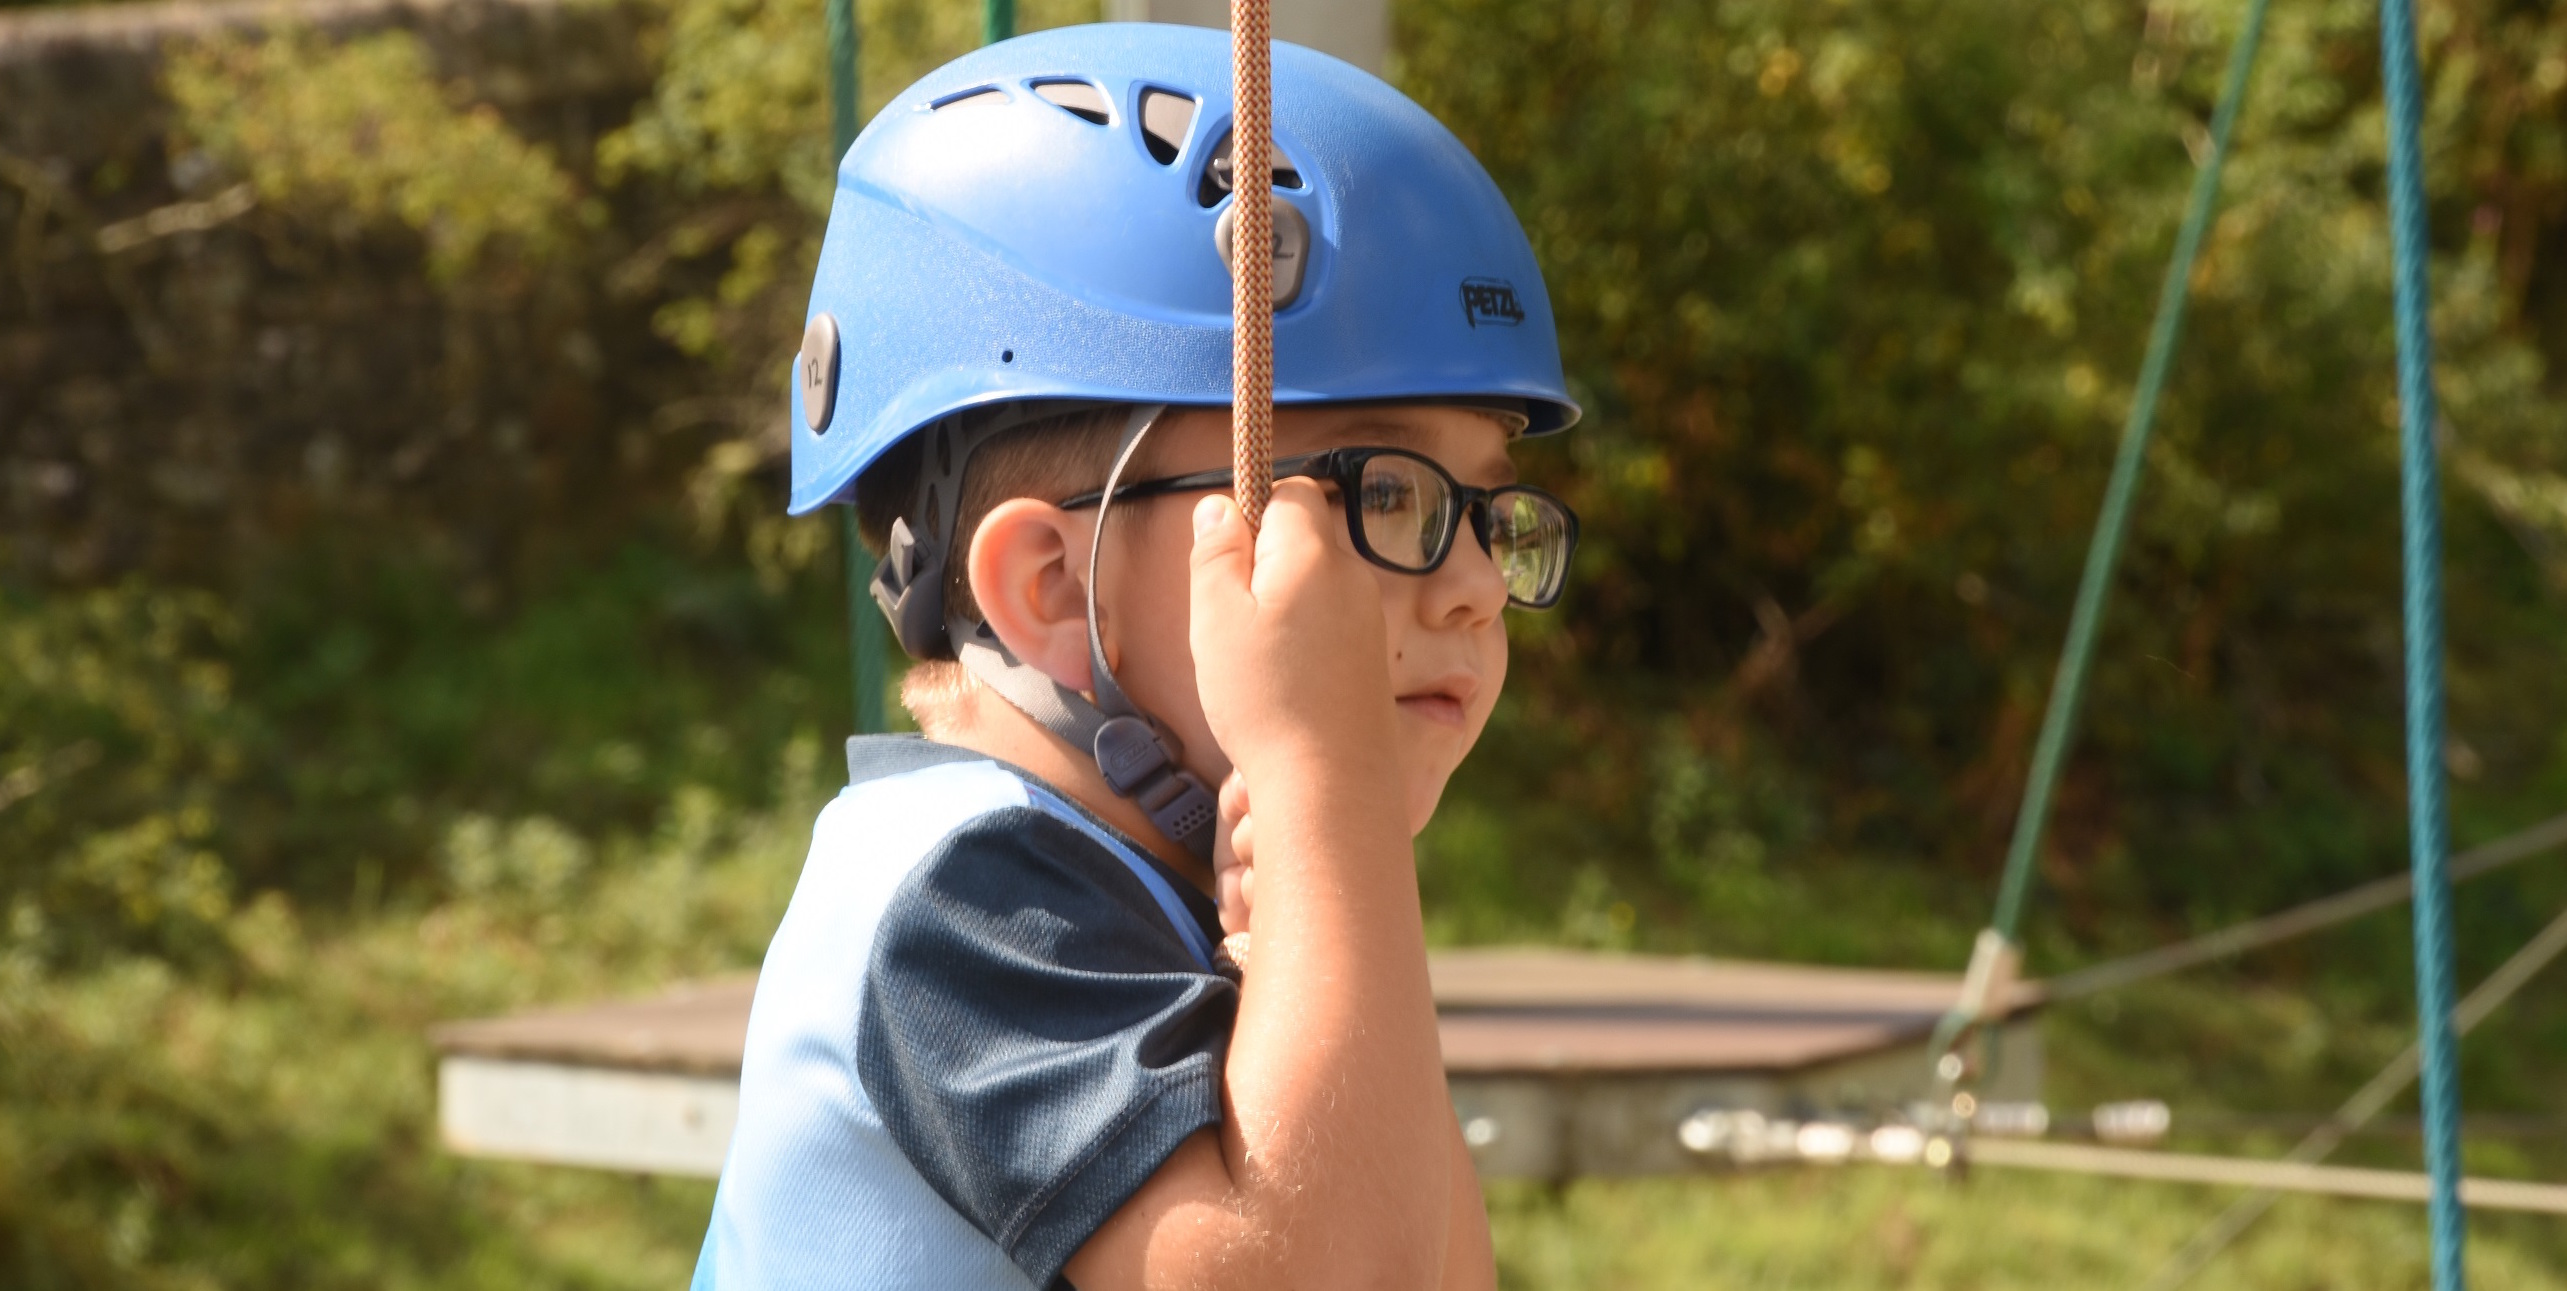 Image Showing a young boy wearing a safety helmet